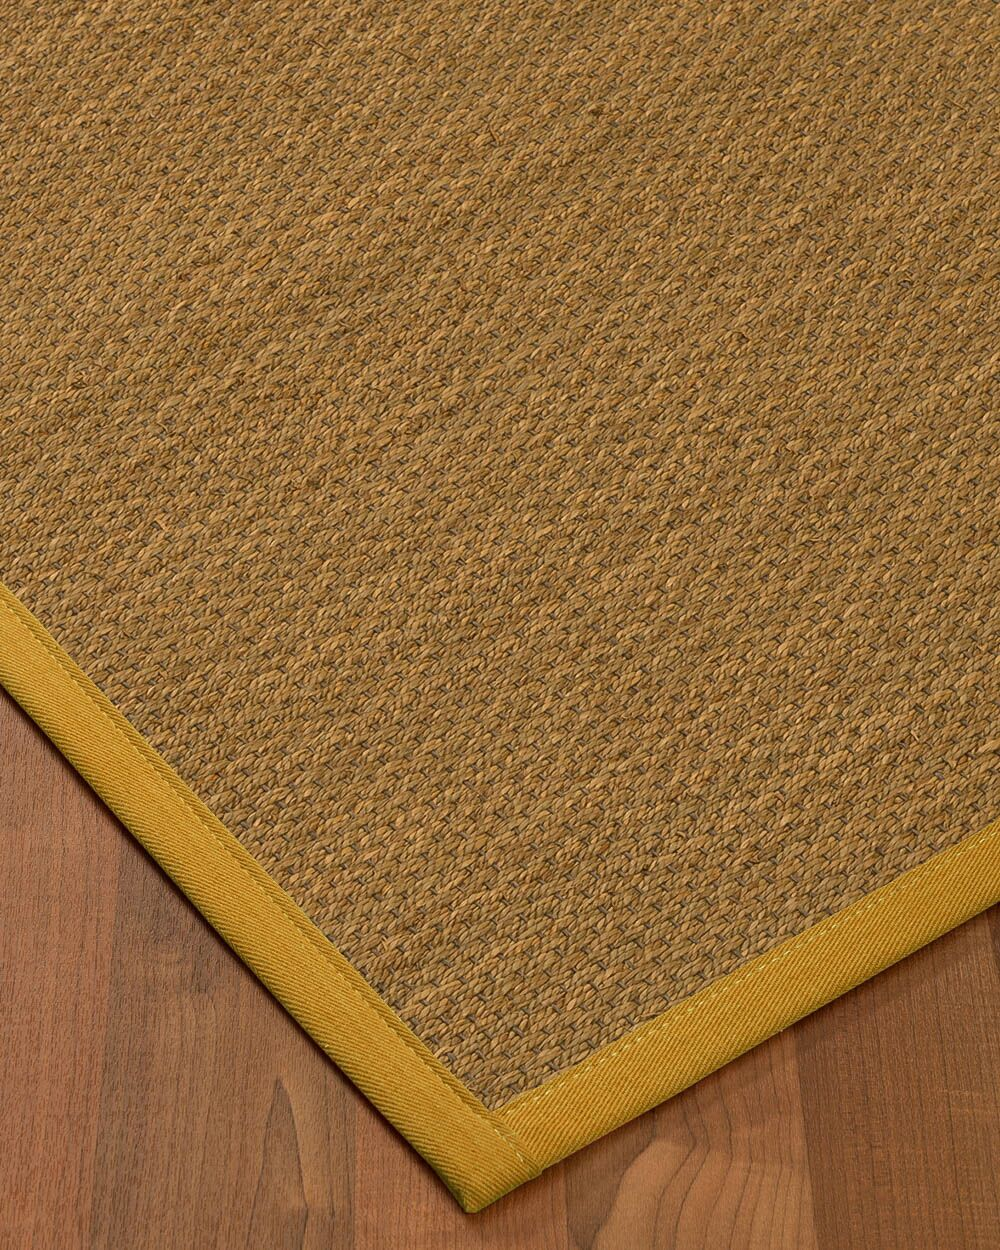 Chavis Border Hand-Woven Beige/Tan Area Rug Rug Size: Rectangle 6' x 9', Rug Pad Included: Yes